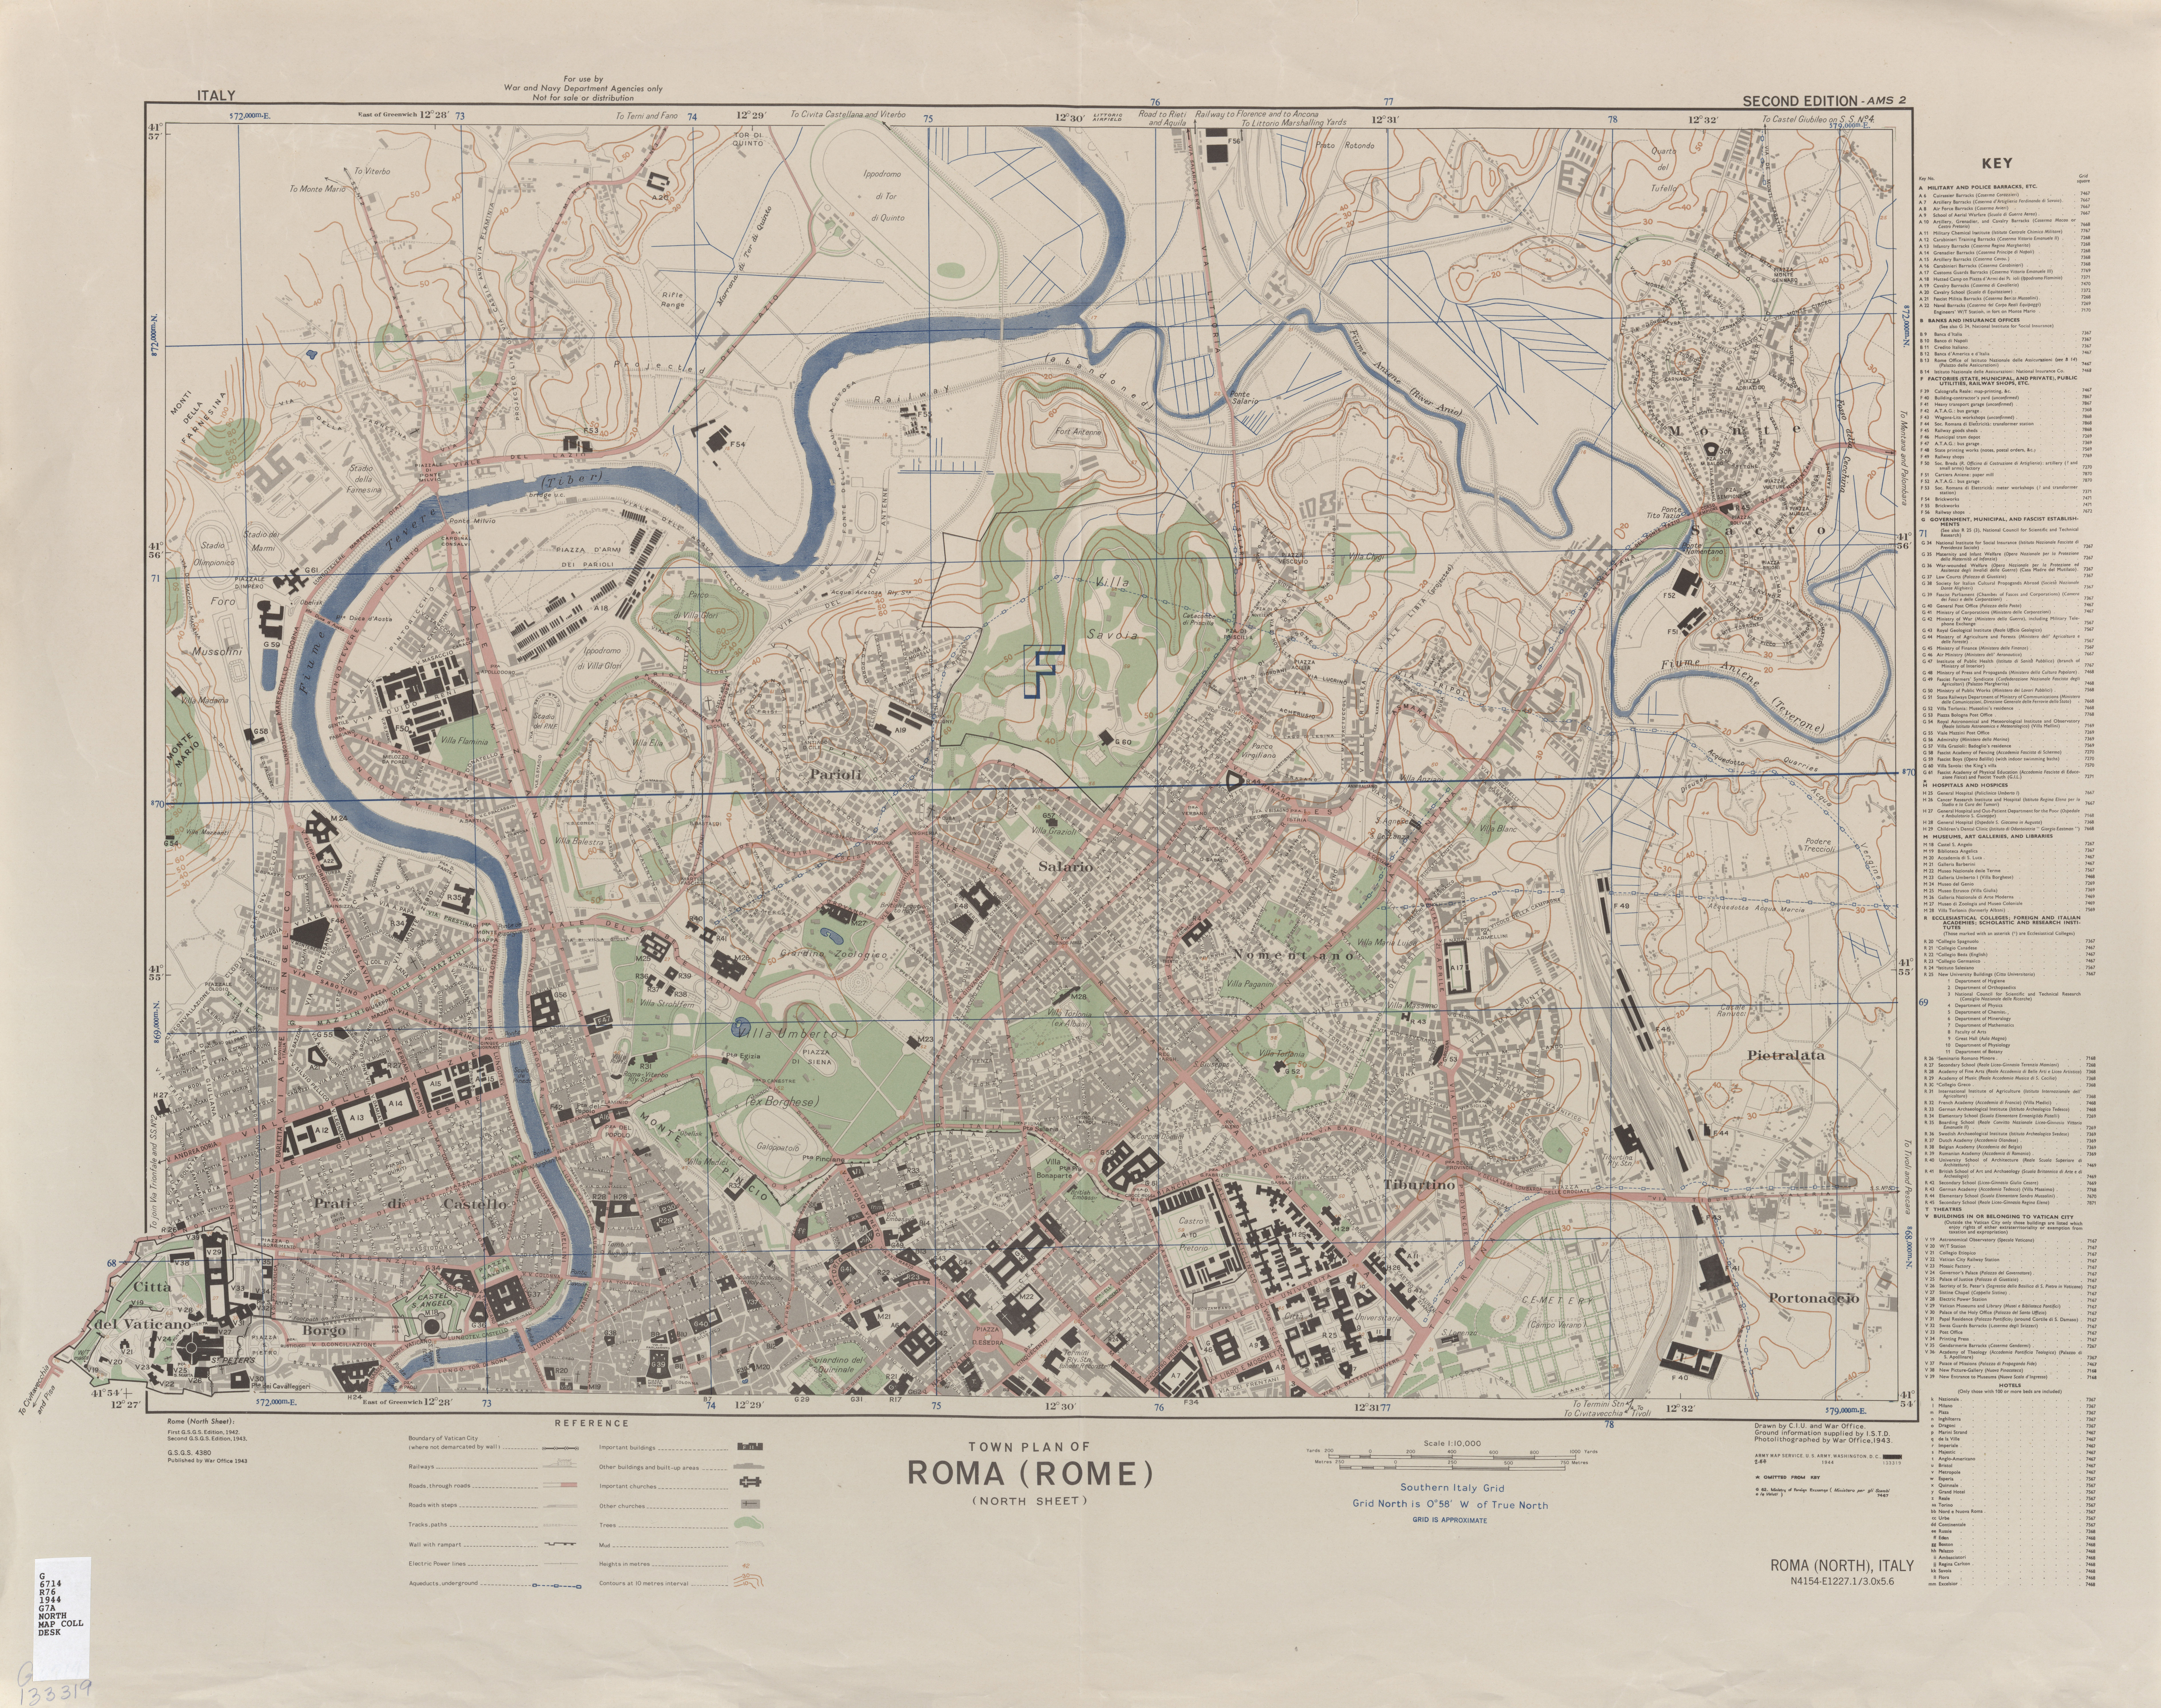 Italy AMS Topographic Maps PerryCastañeda Map Collection UT - Maps of us and rome